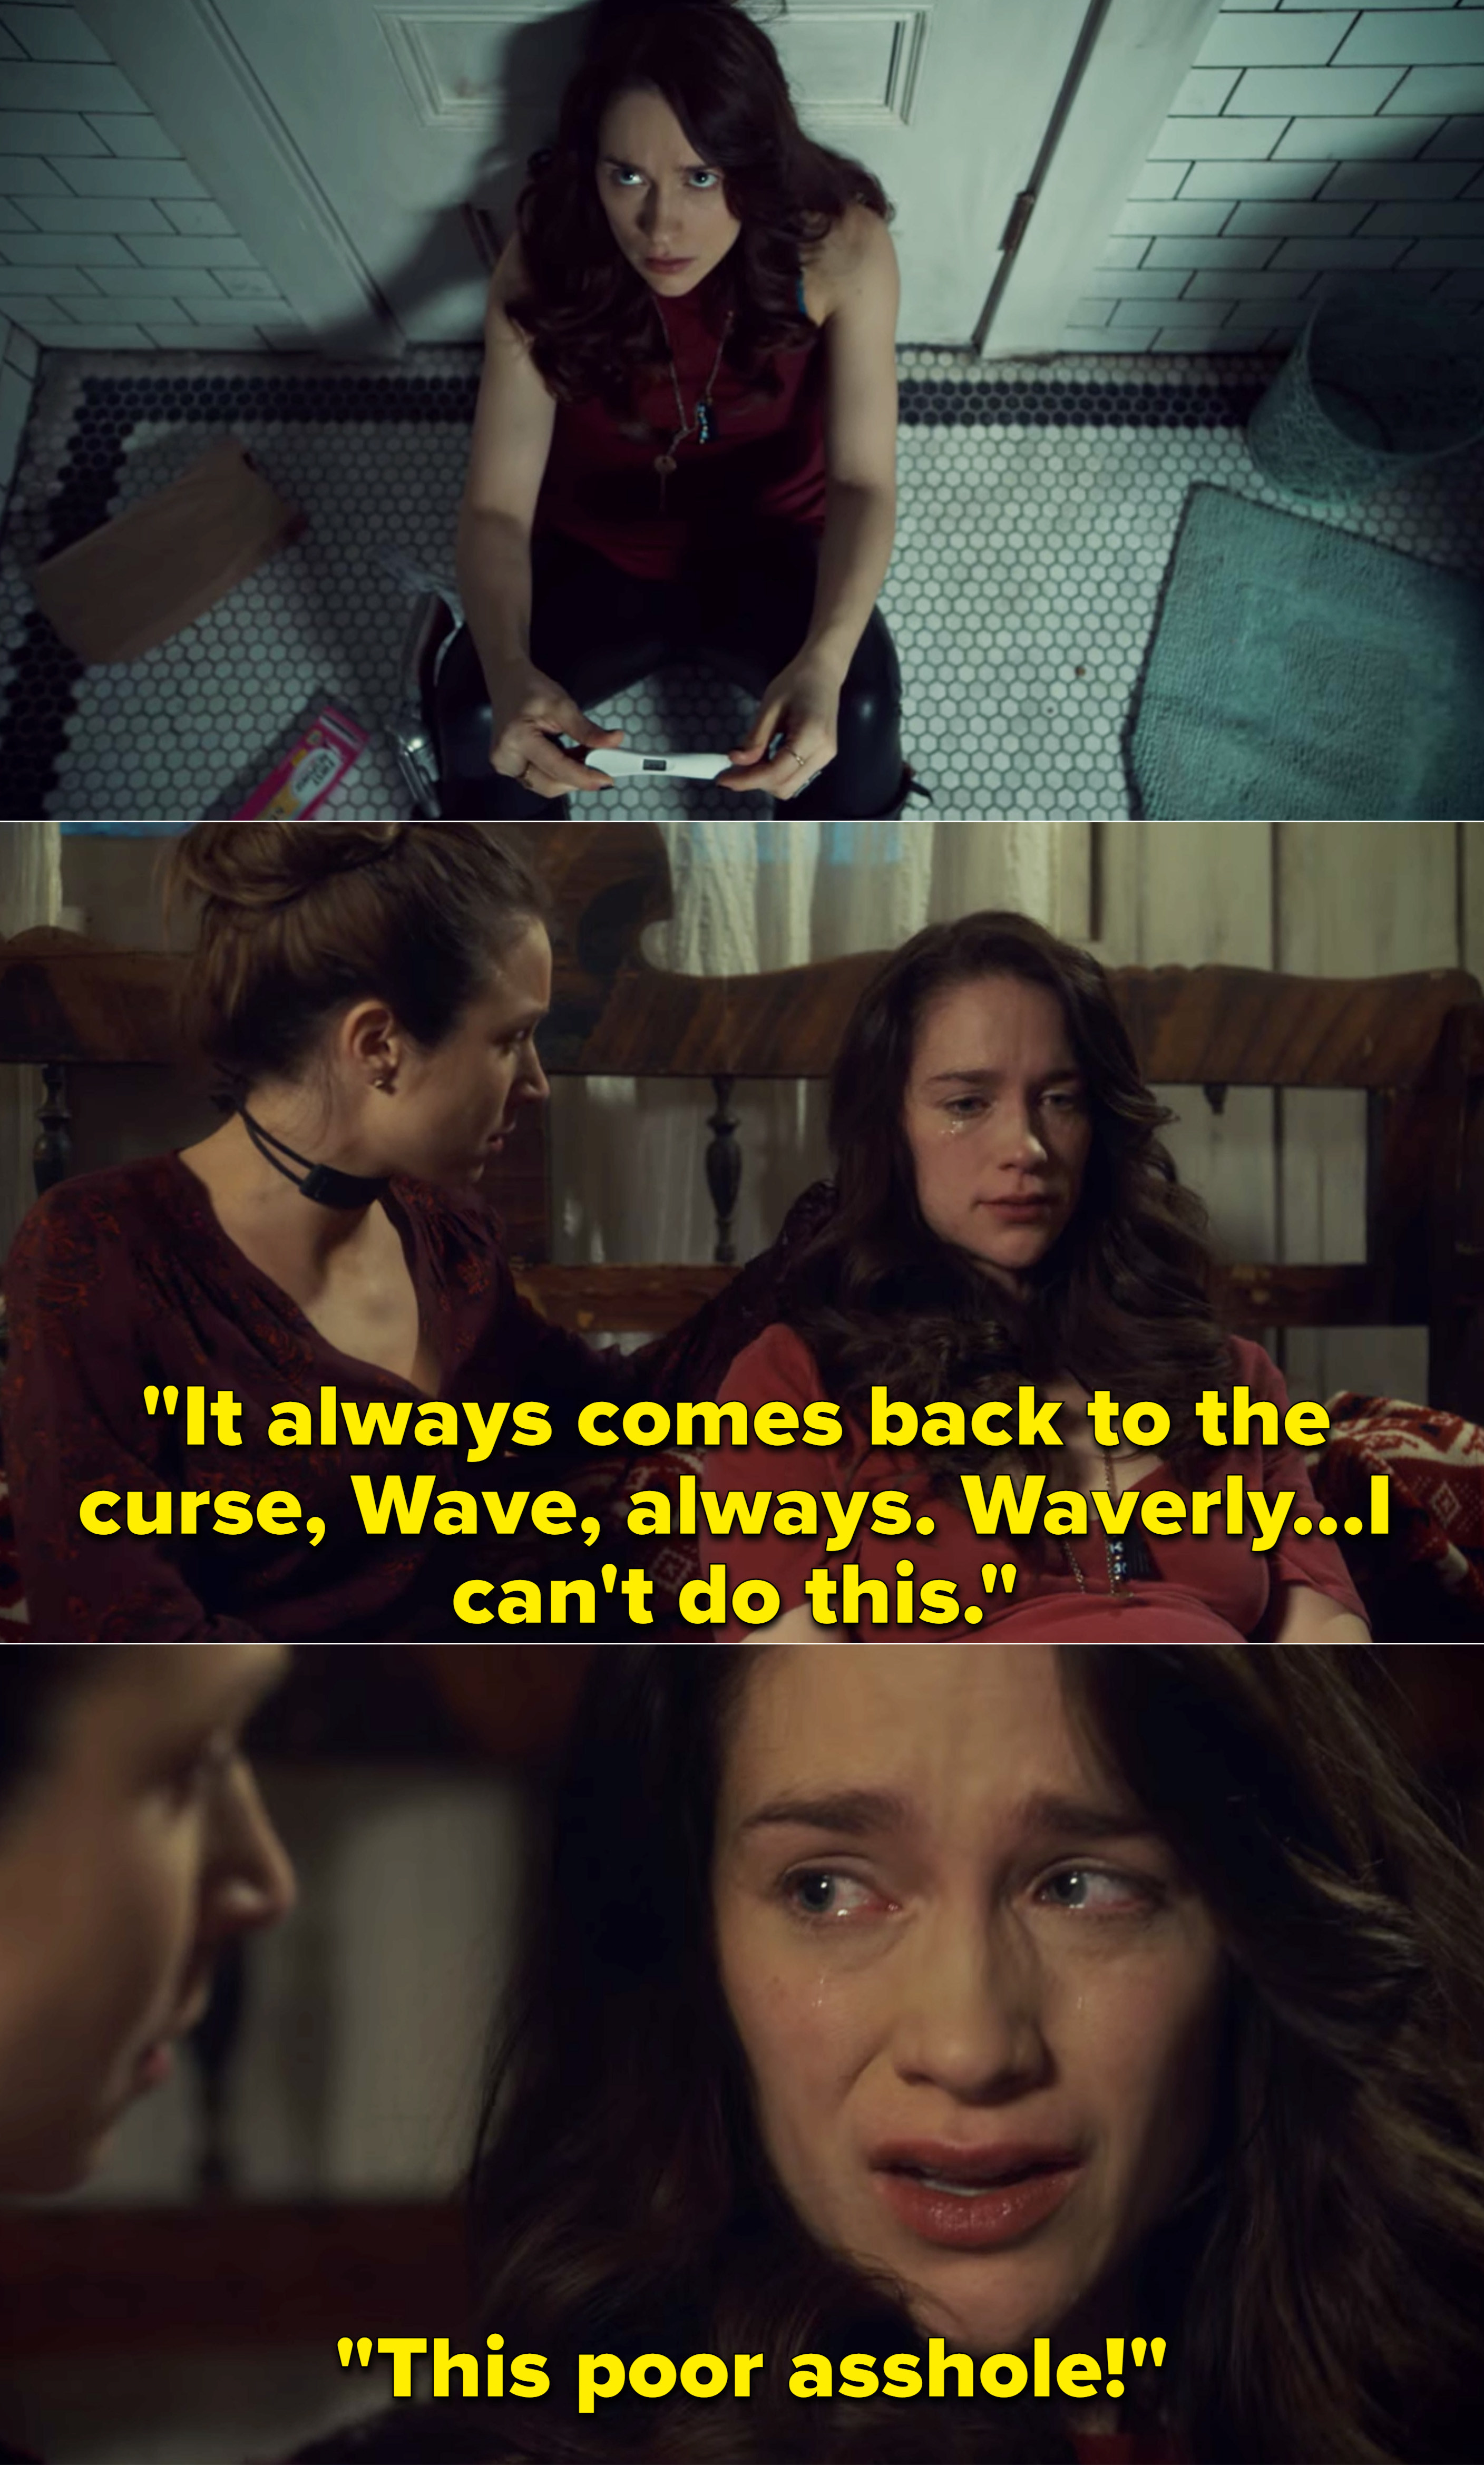 """Wynonna telling Waverly, """"It always comes back to the curse, Wave, always. Waverly...I can't do this. This poor asshole"""""""